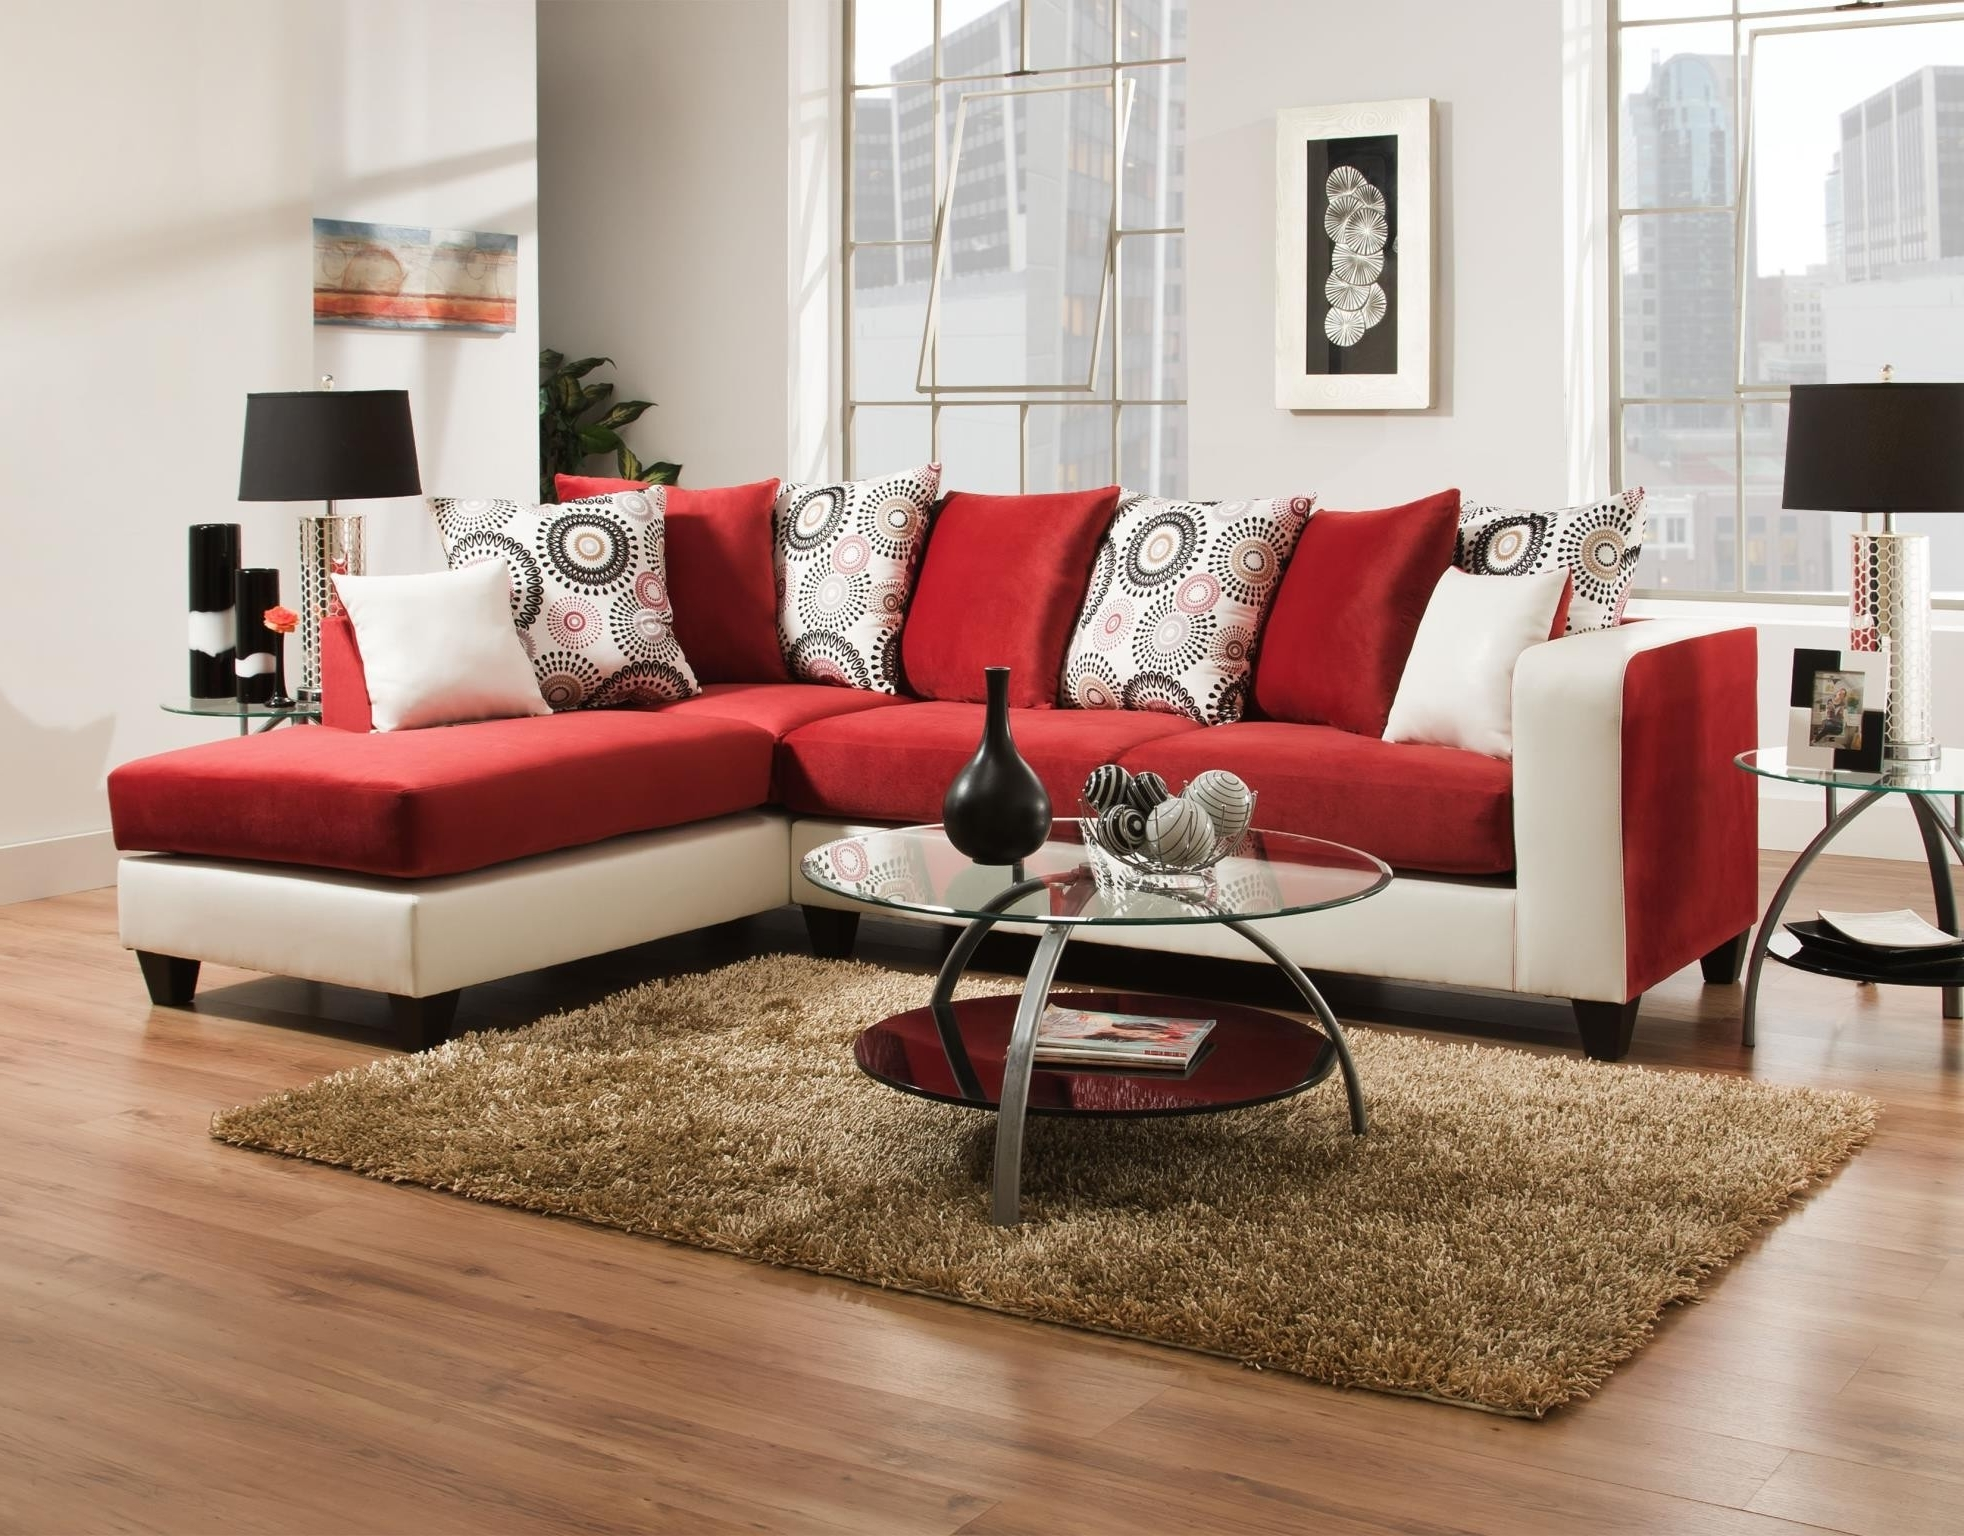 New Sectional Sofa Tampa – Buildsimplehome Within Trendy Tampa Sectional Sofas (View 11 of 20)